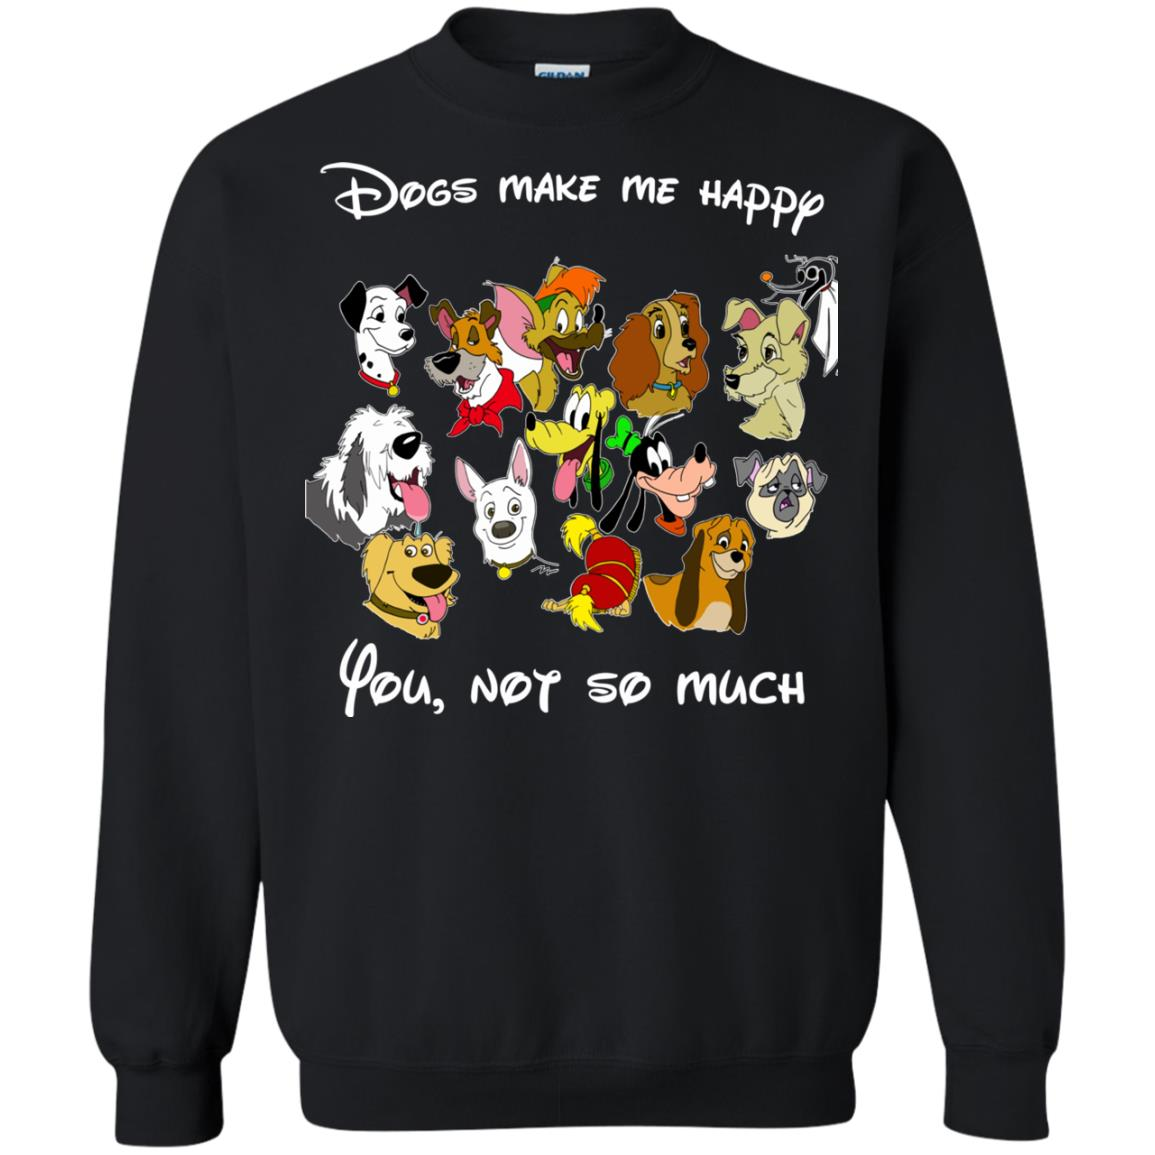 image 898 - Disney Dogs: Dogs make me happy, you no so much shirt, hoodie